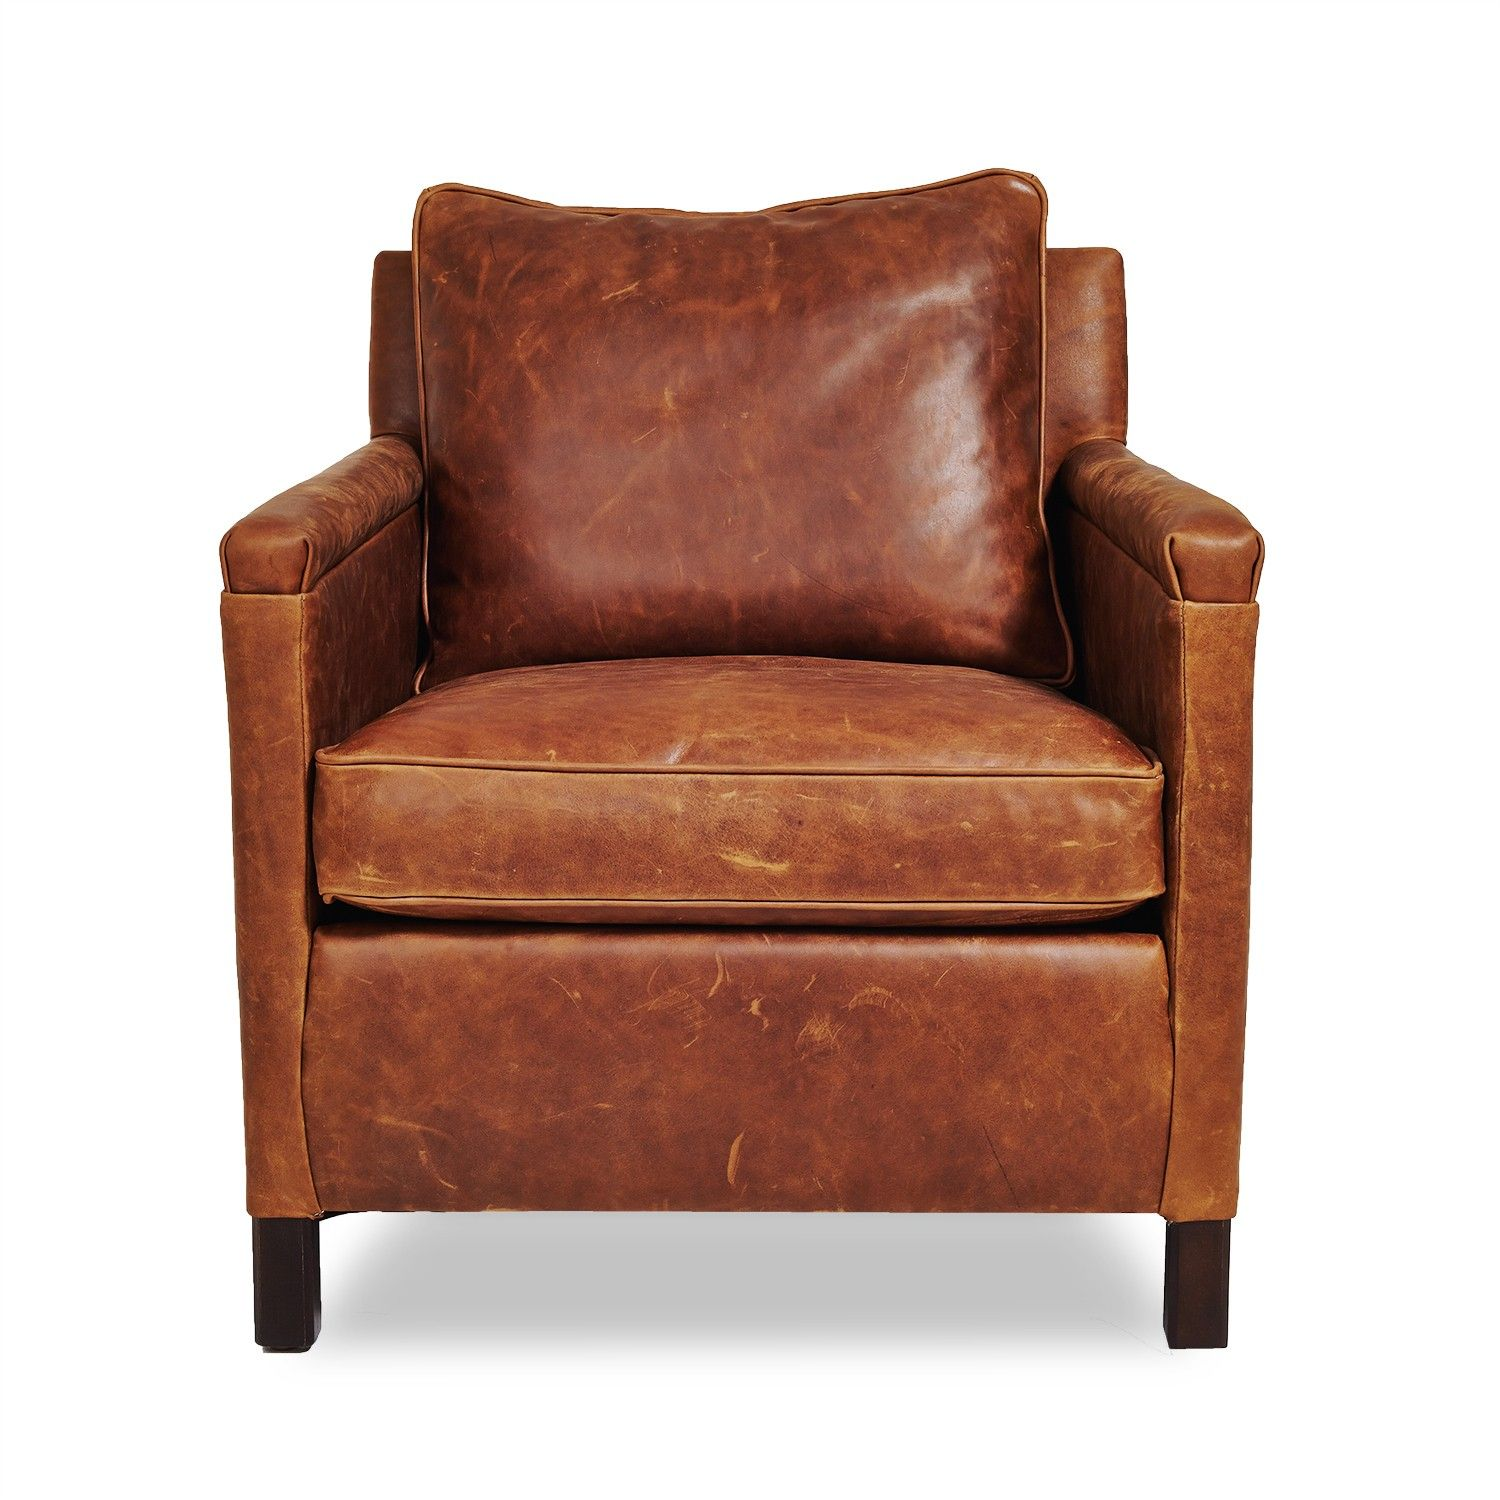 The Heston gives an urban edge to the classic leather